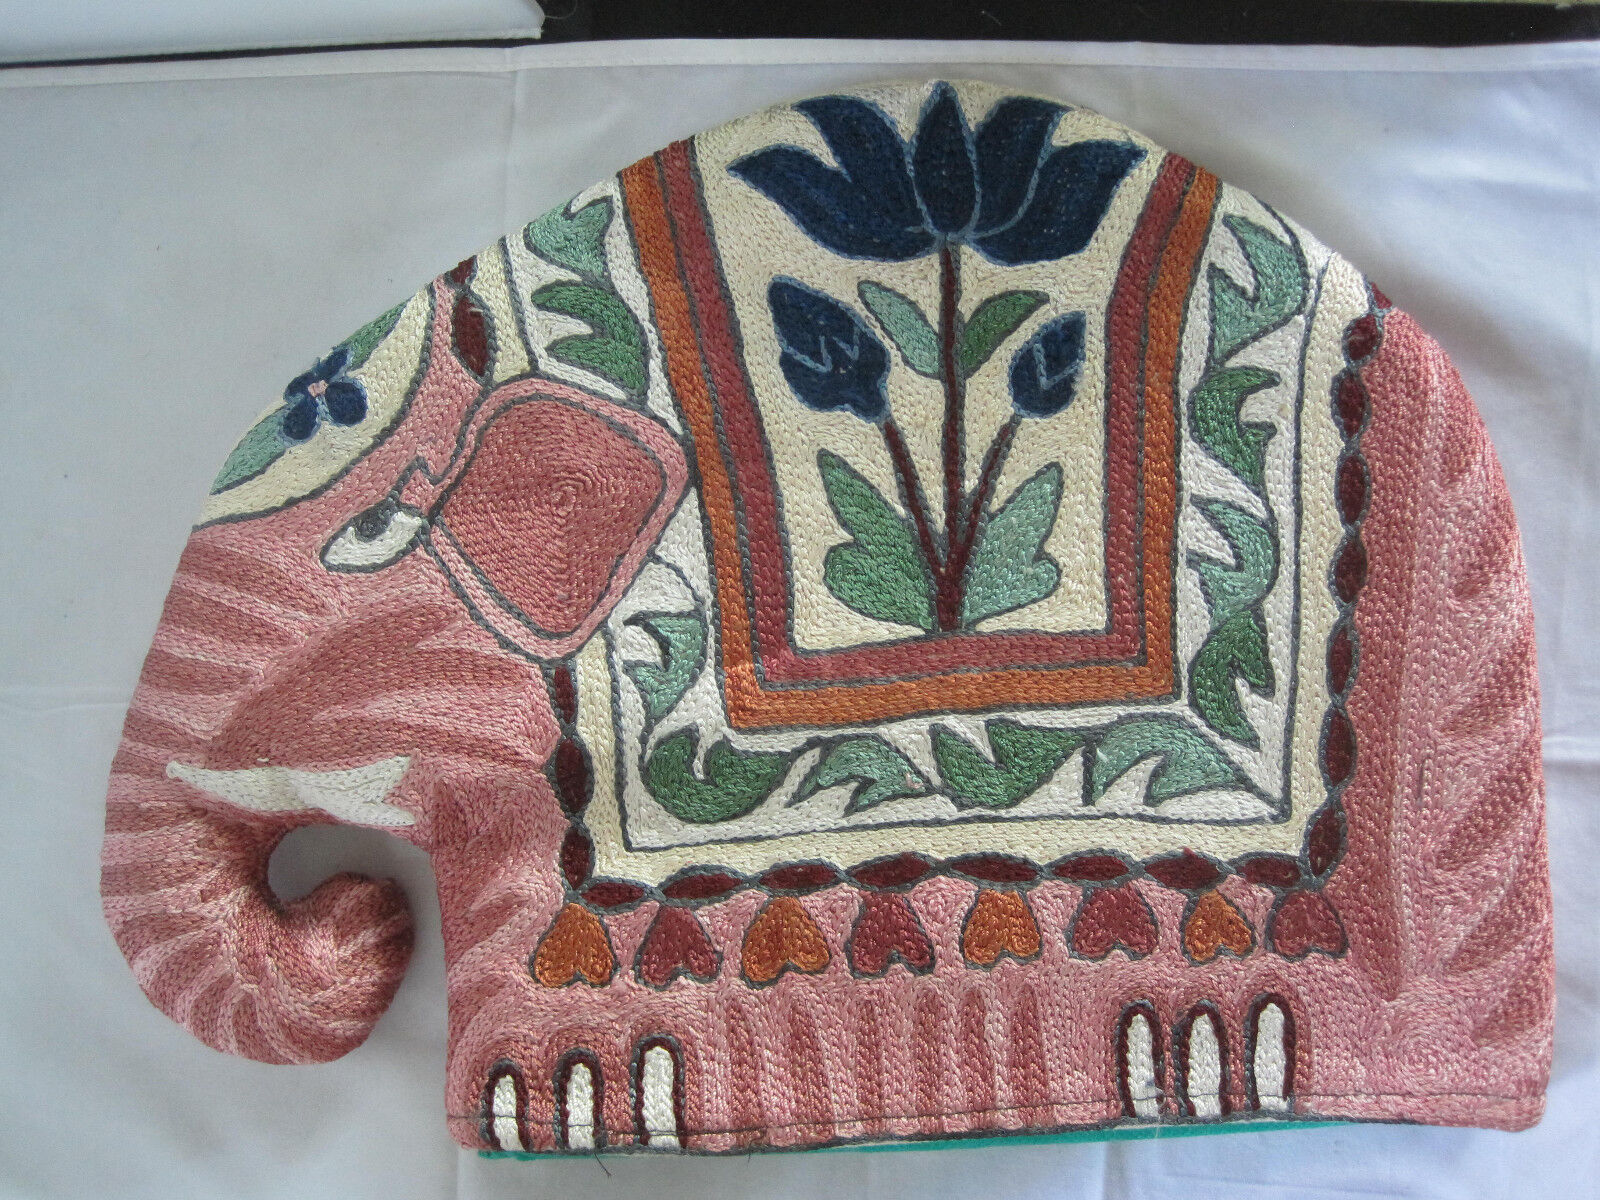 hand knit elephant kitchen appliance cover 29 99 picclick